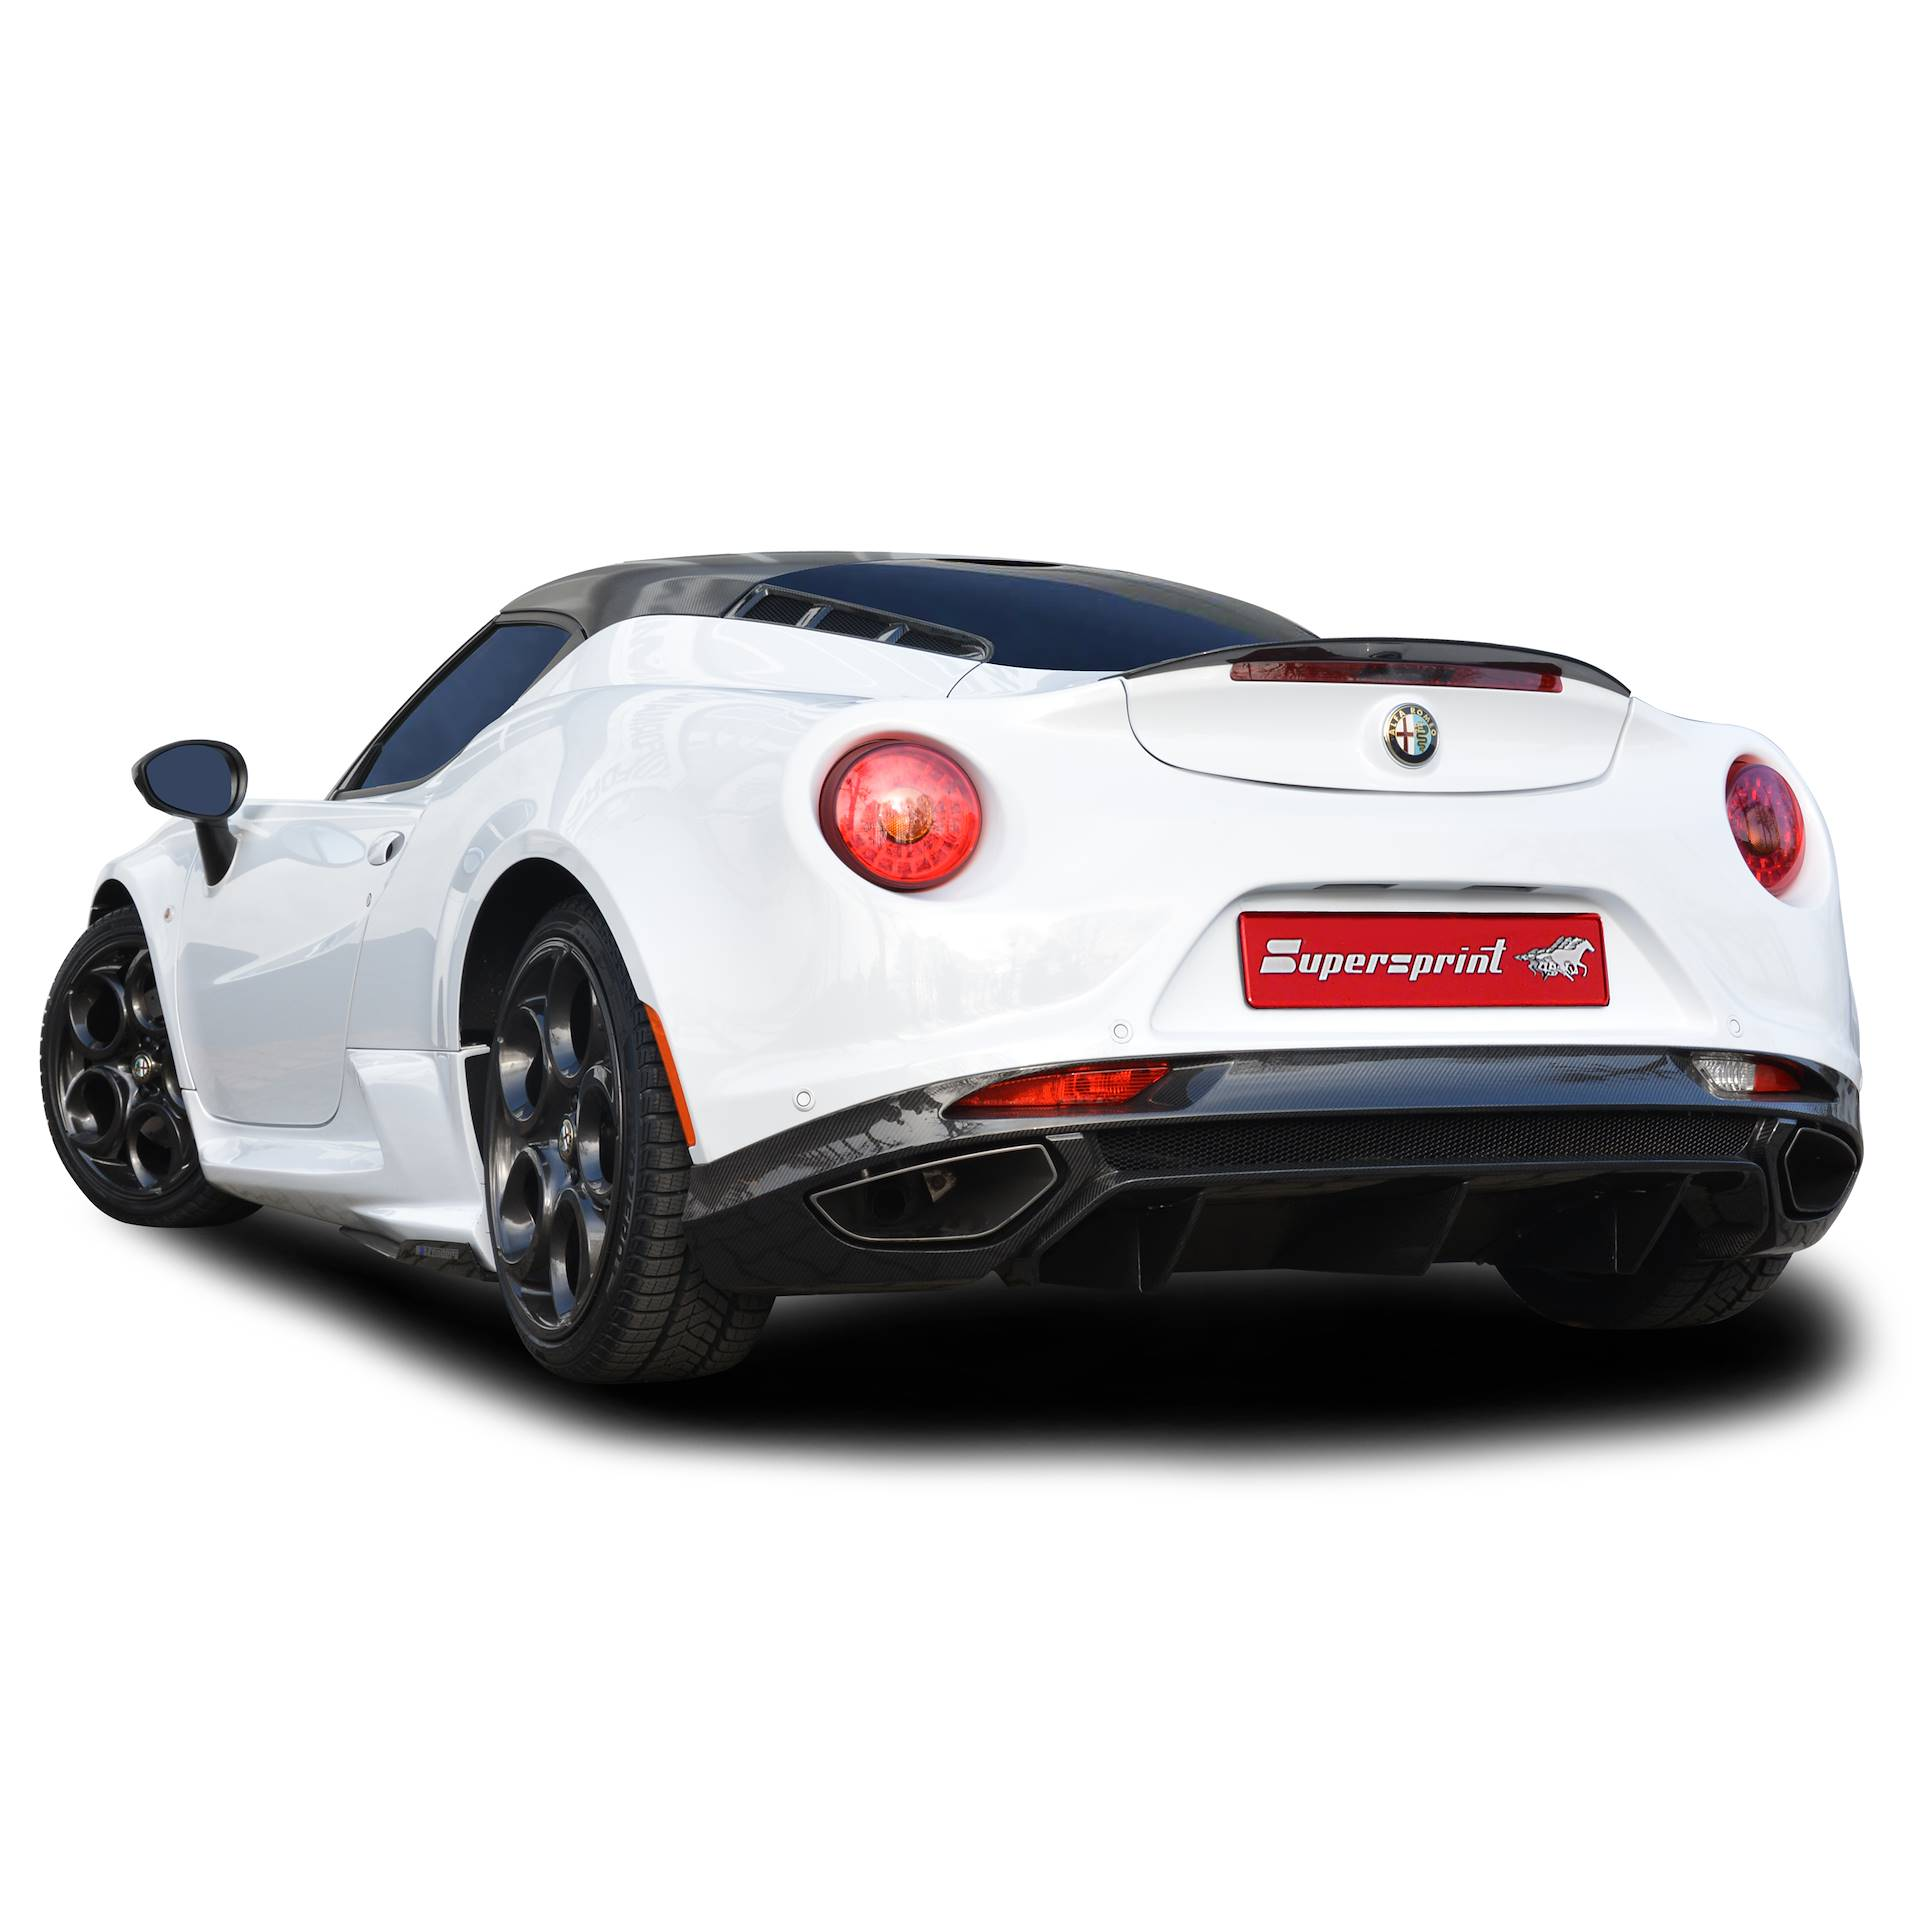 Supersprint exhaust system for ALFA ROMEO 4C 1750 TBi (241 Hp)